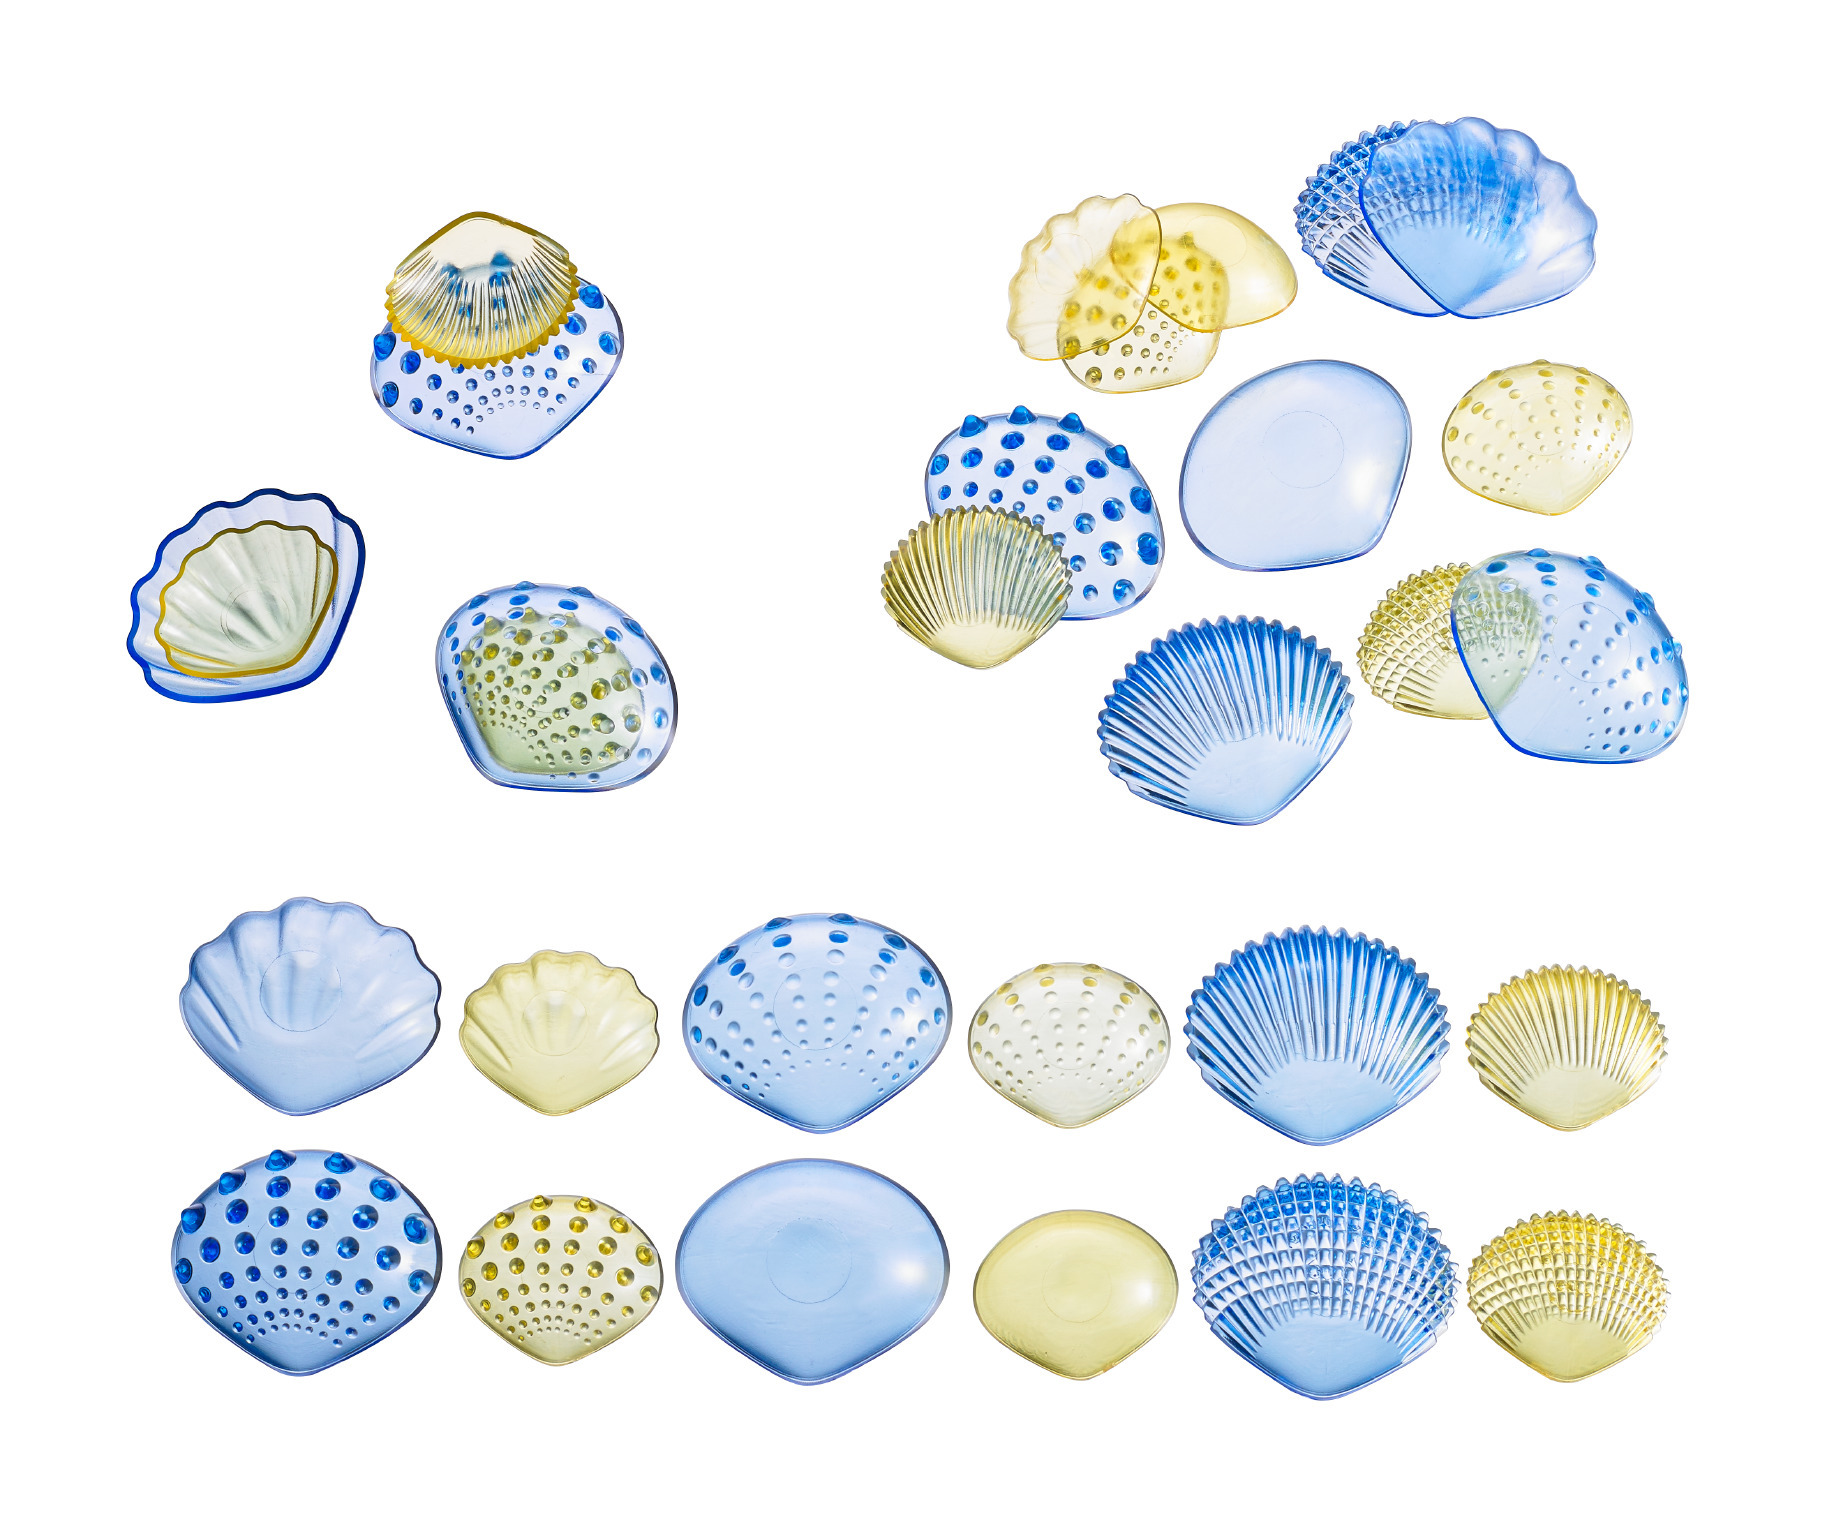 Transparent Tactile Shells 1 - 13840J.jpg